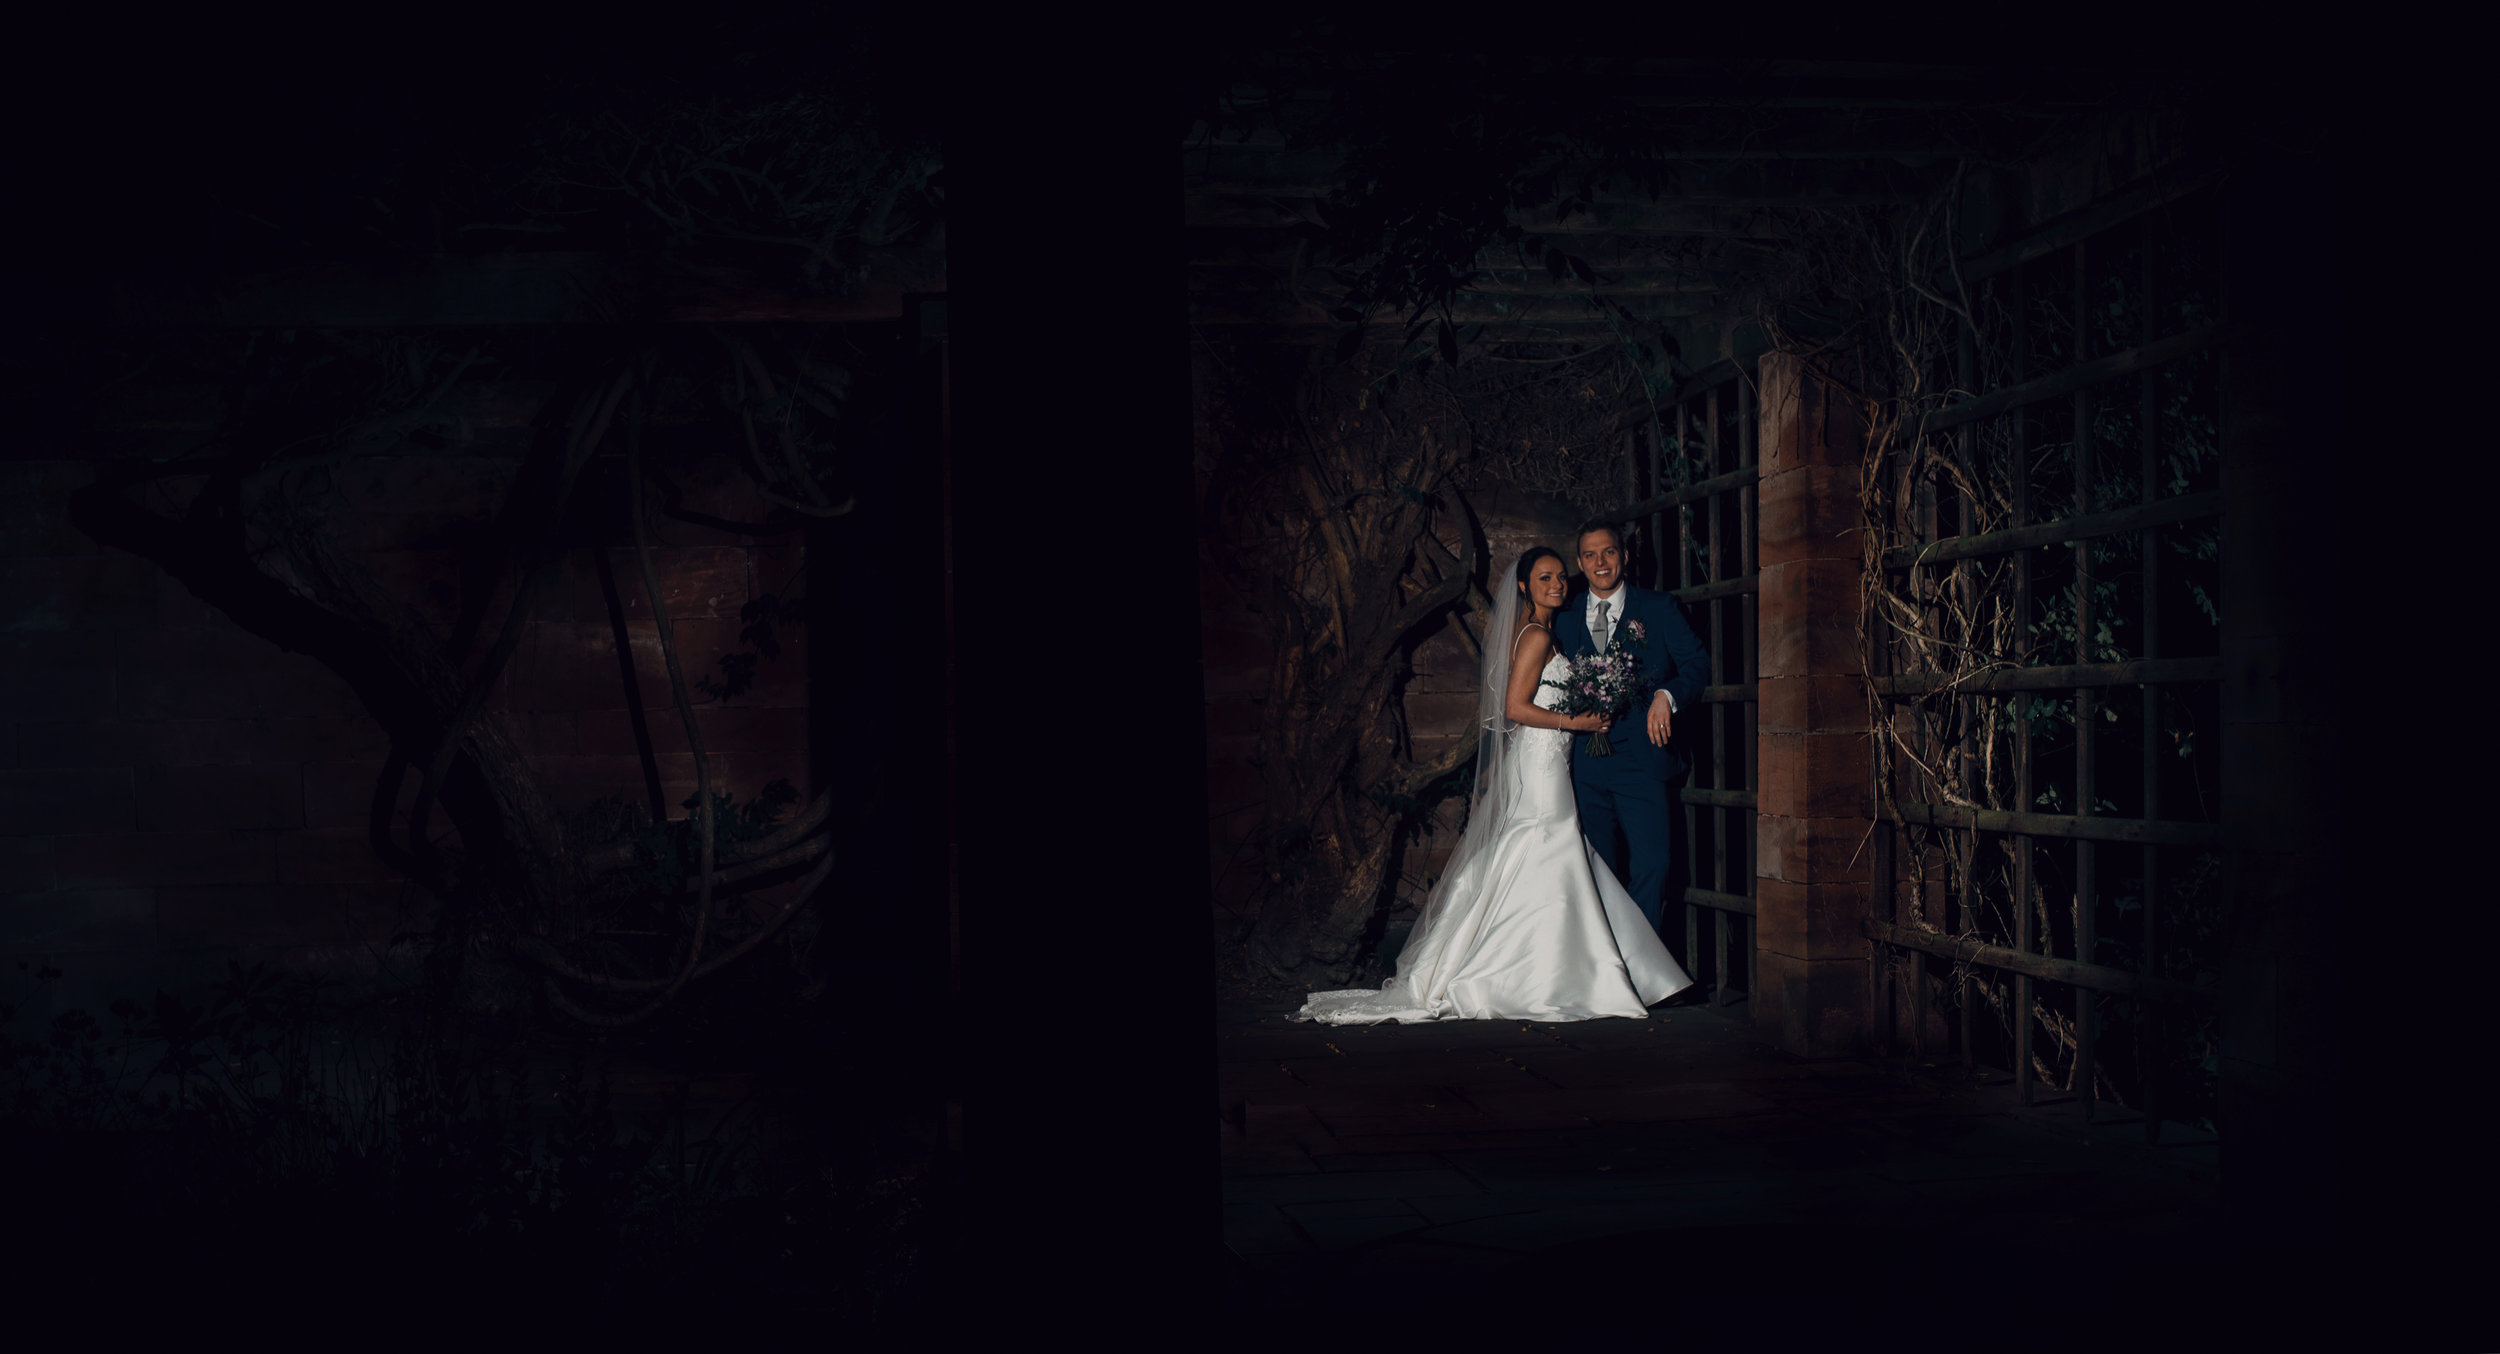 Jessica and Elliots wedding image from the couples portrait shoot at night - Inglewood Manor Wirral